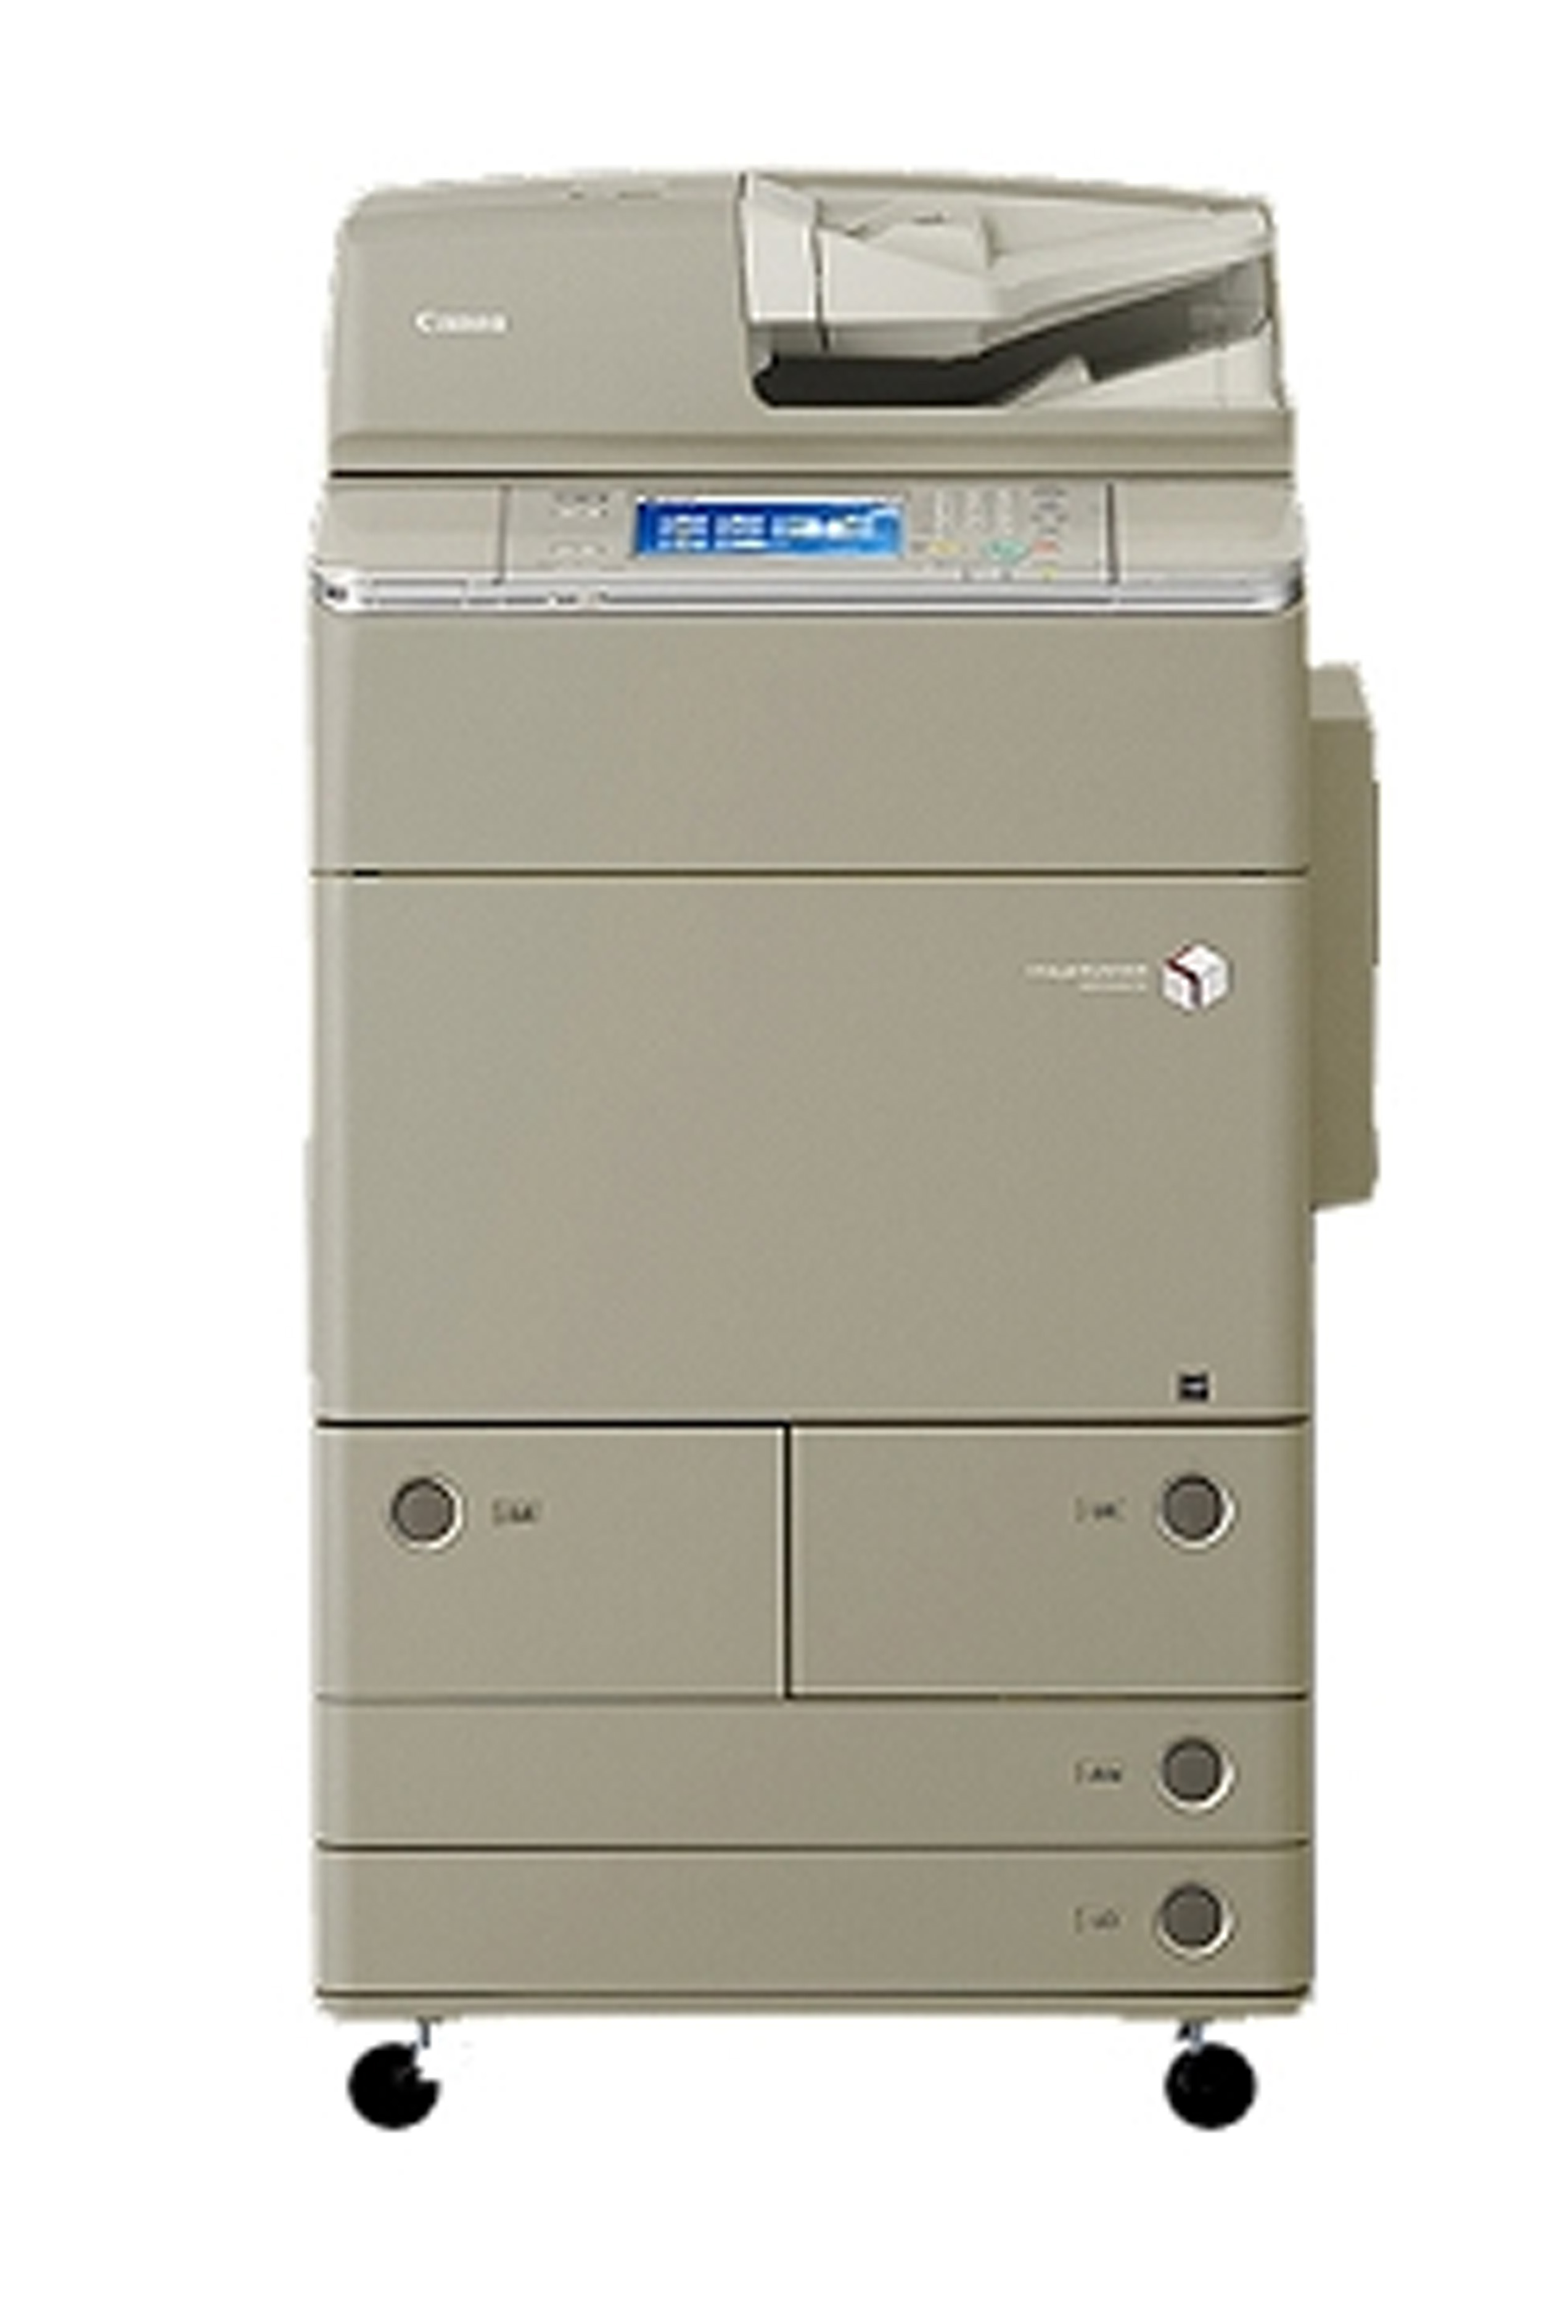 CANON IMAGERUNNER ADVANCE C9065 PRO MFP PS3 DRIVERS FOR MAC